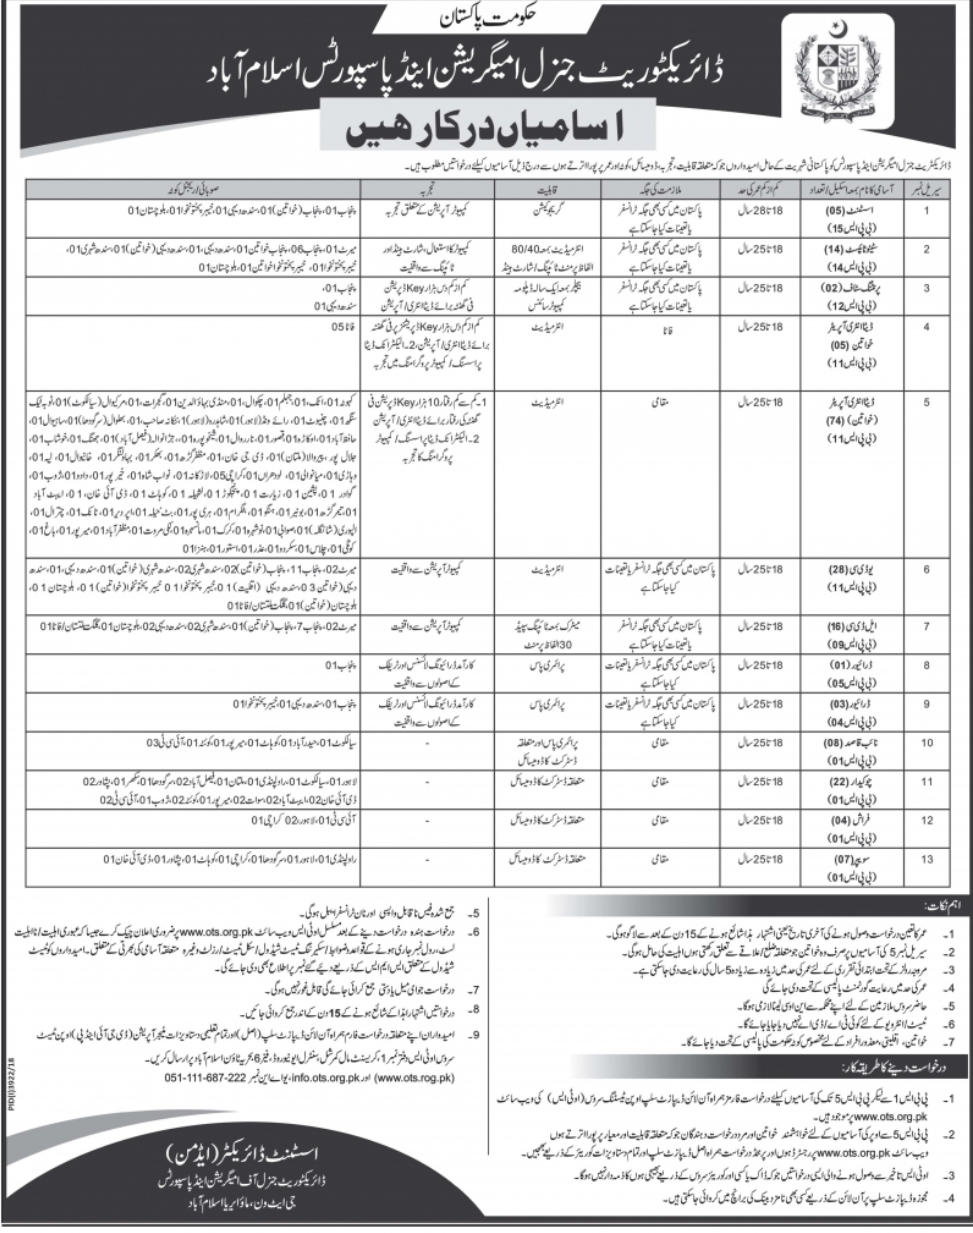 Directorate General Of Immigration And Passports Islamabad Jobs 2019 Advertisement, ministry of interior jobs passport office